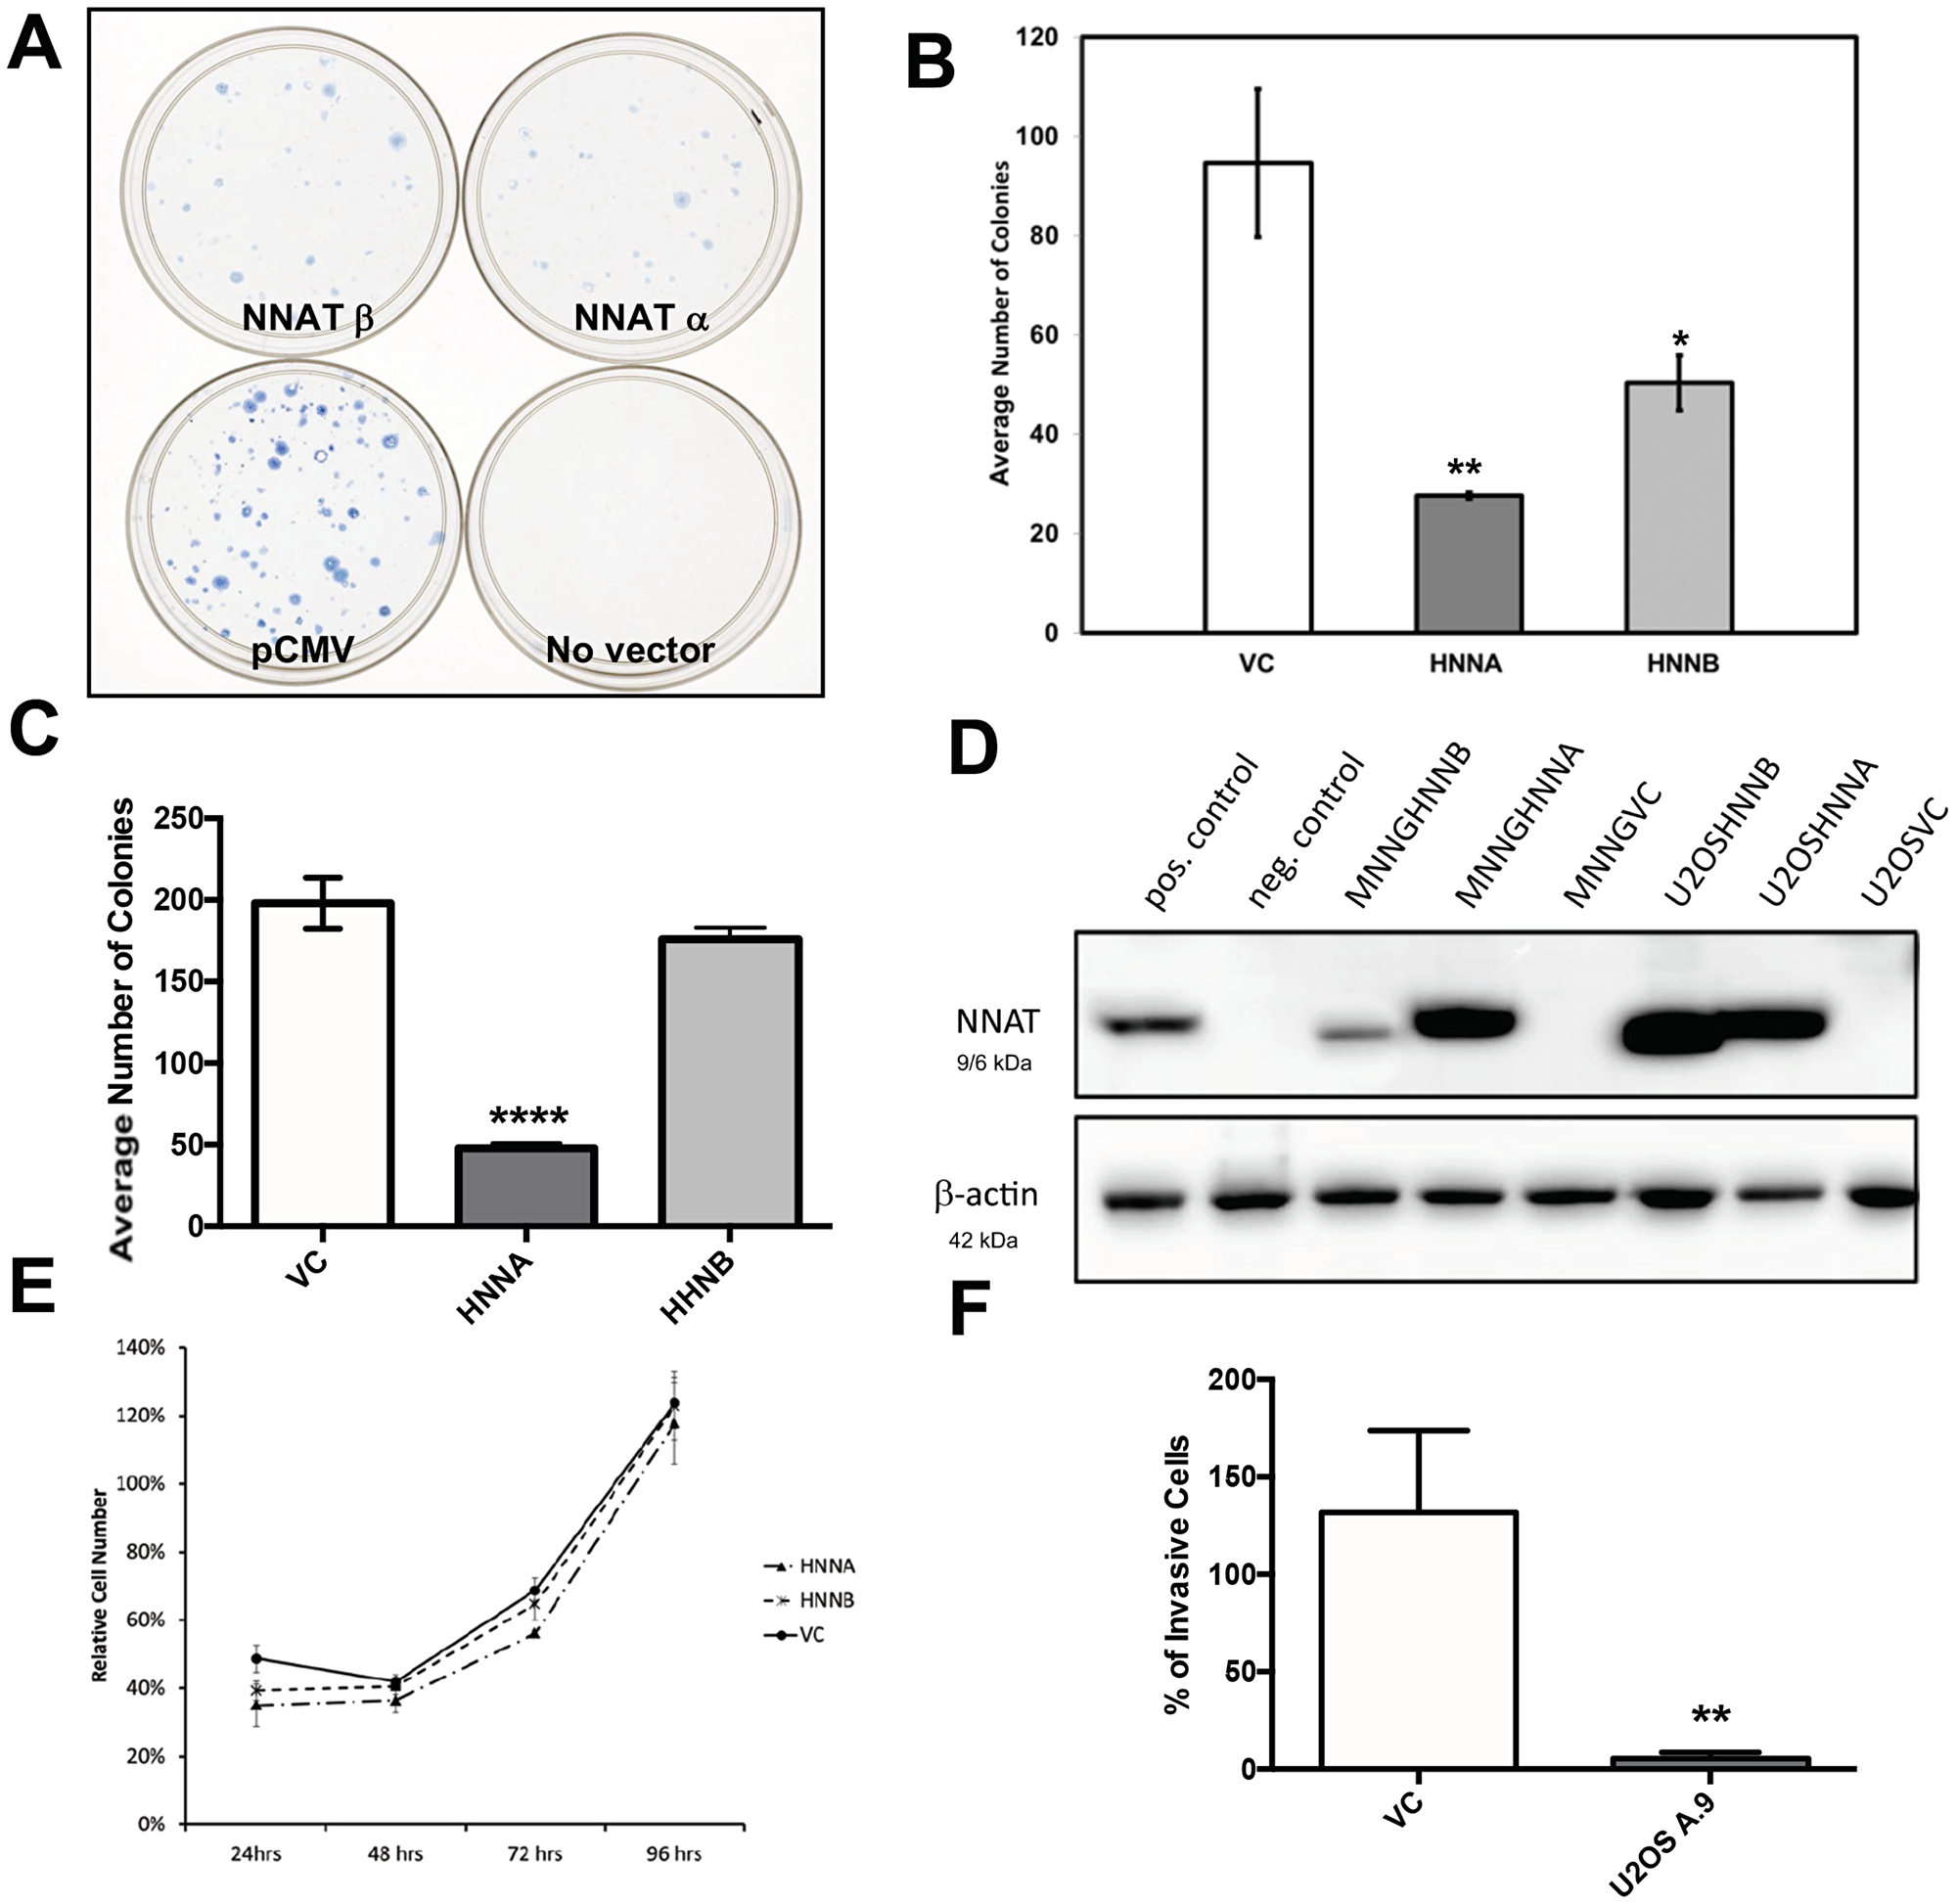 Enforced expression of NNAT in human osteosarcoma cells inhibits clonogenicity and migration, but does not slow proliferation.